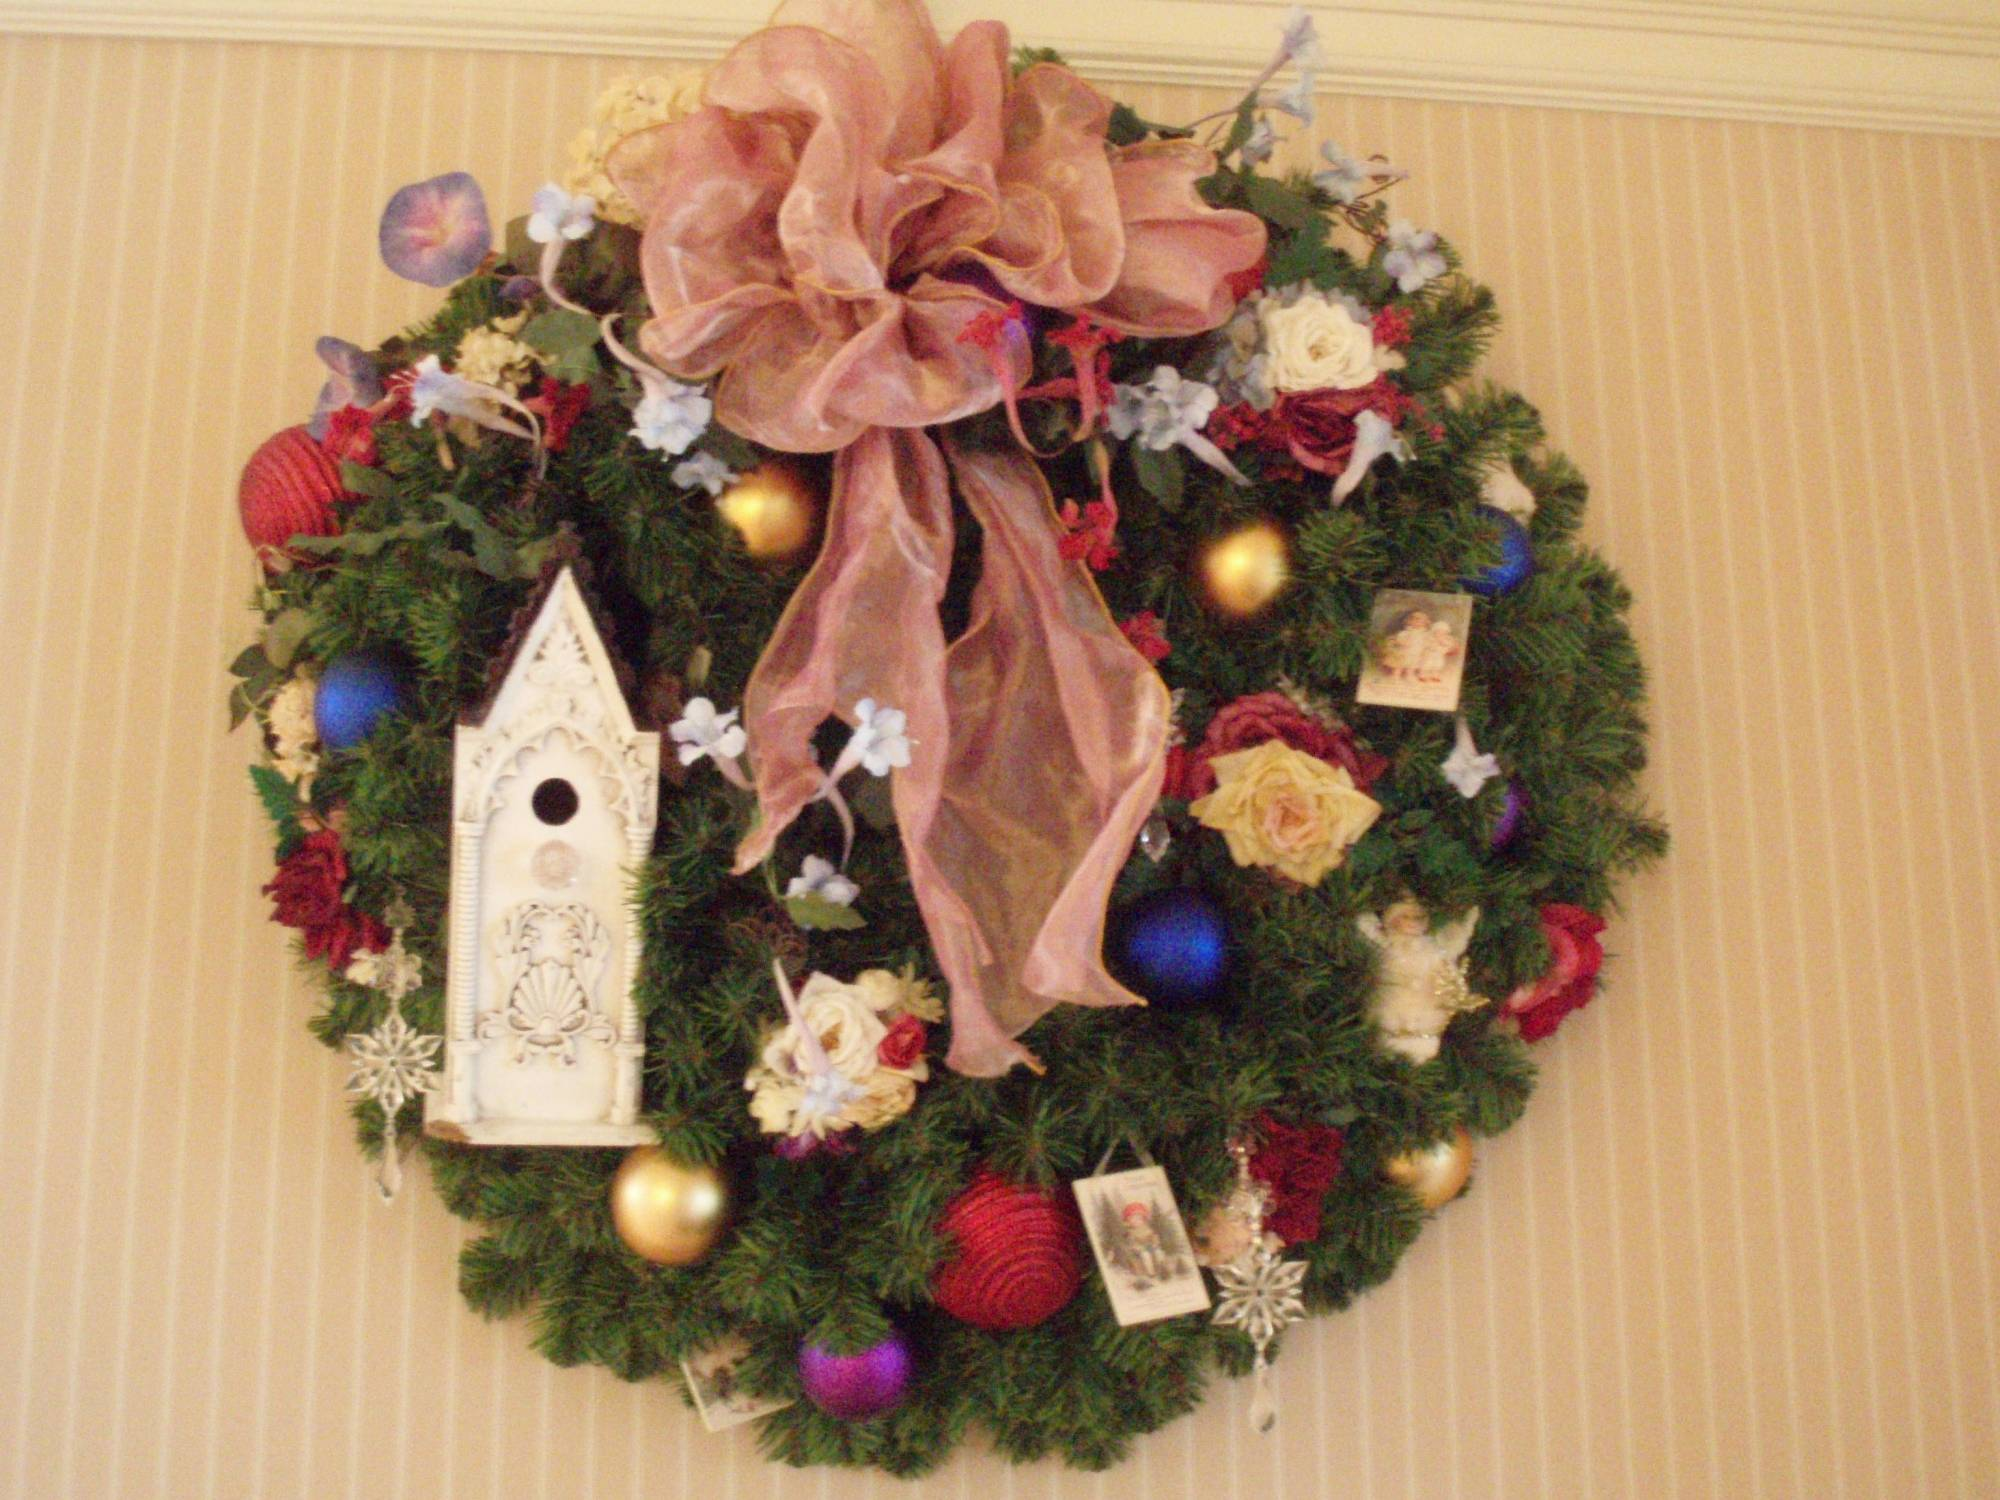 Grand Floridian Lobby - Wreath